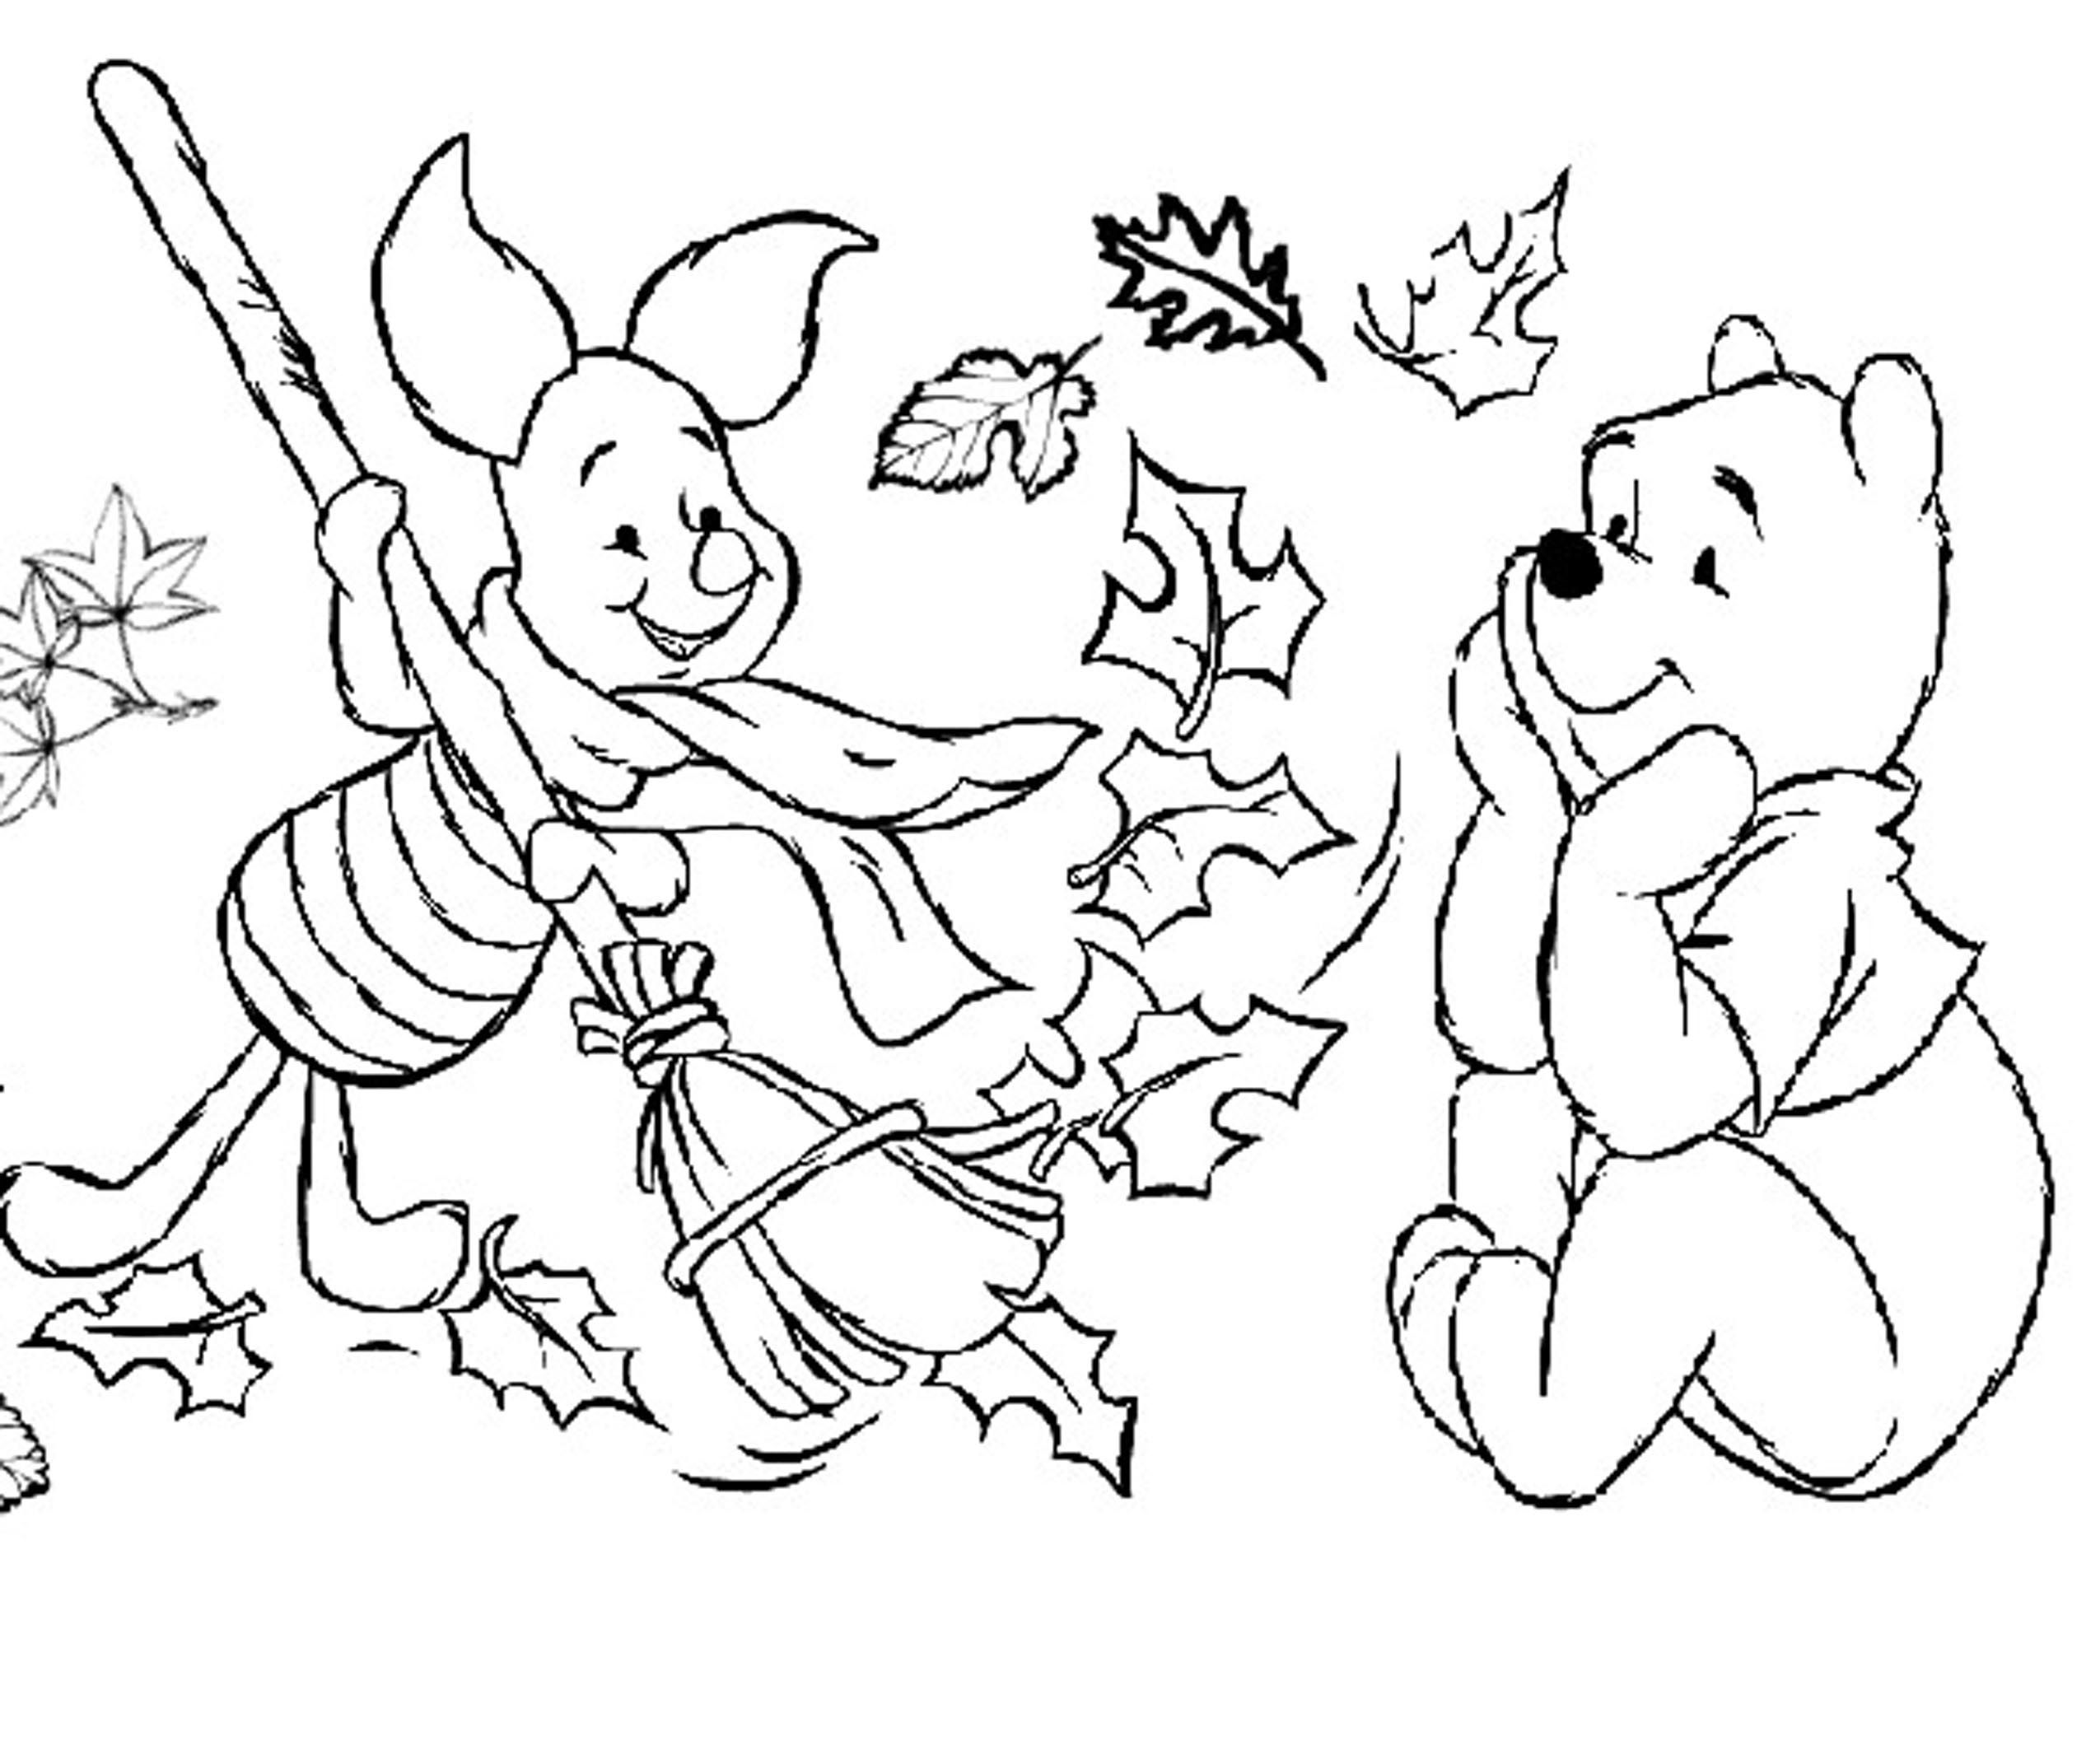 Pooh Piglet Disney Fall Coloring Pages Preschoolers Dinosaur Coloring Pages Fall Coloring Pages Animal Coloring Pages